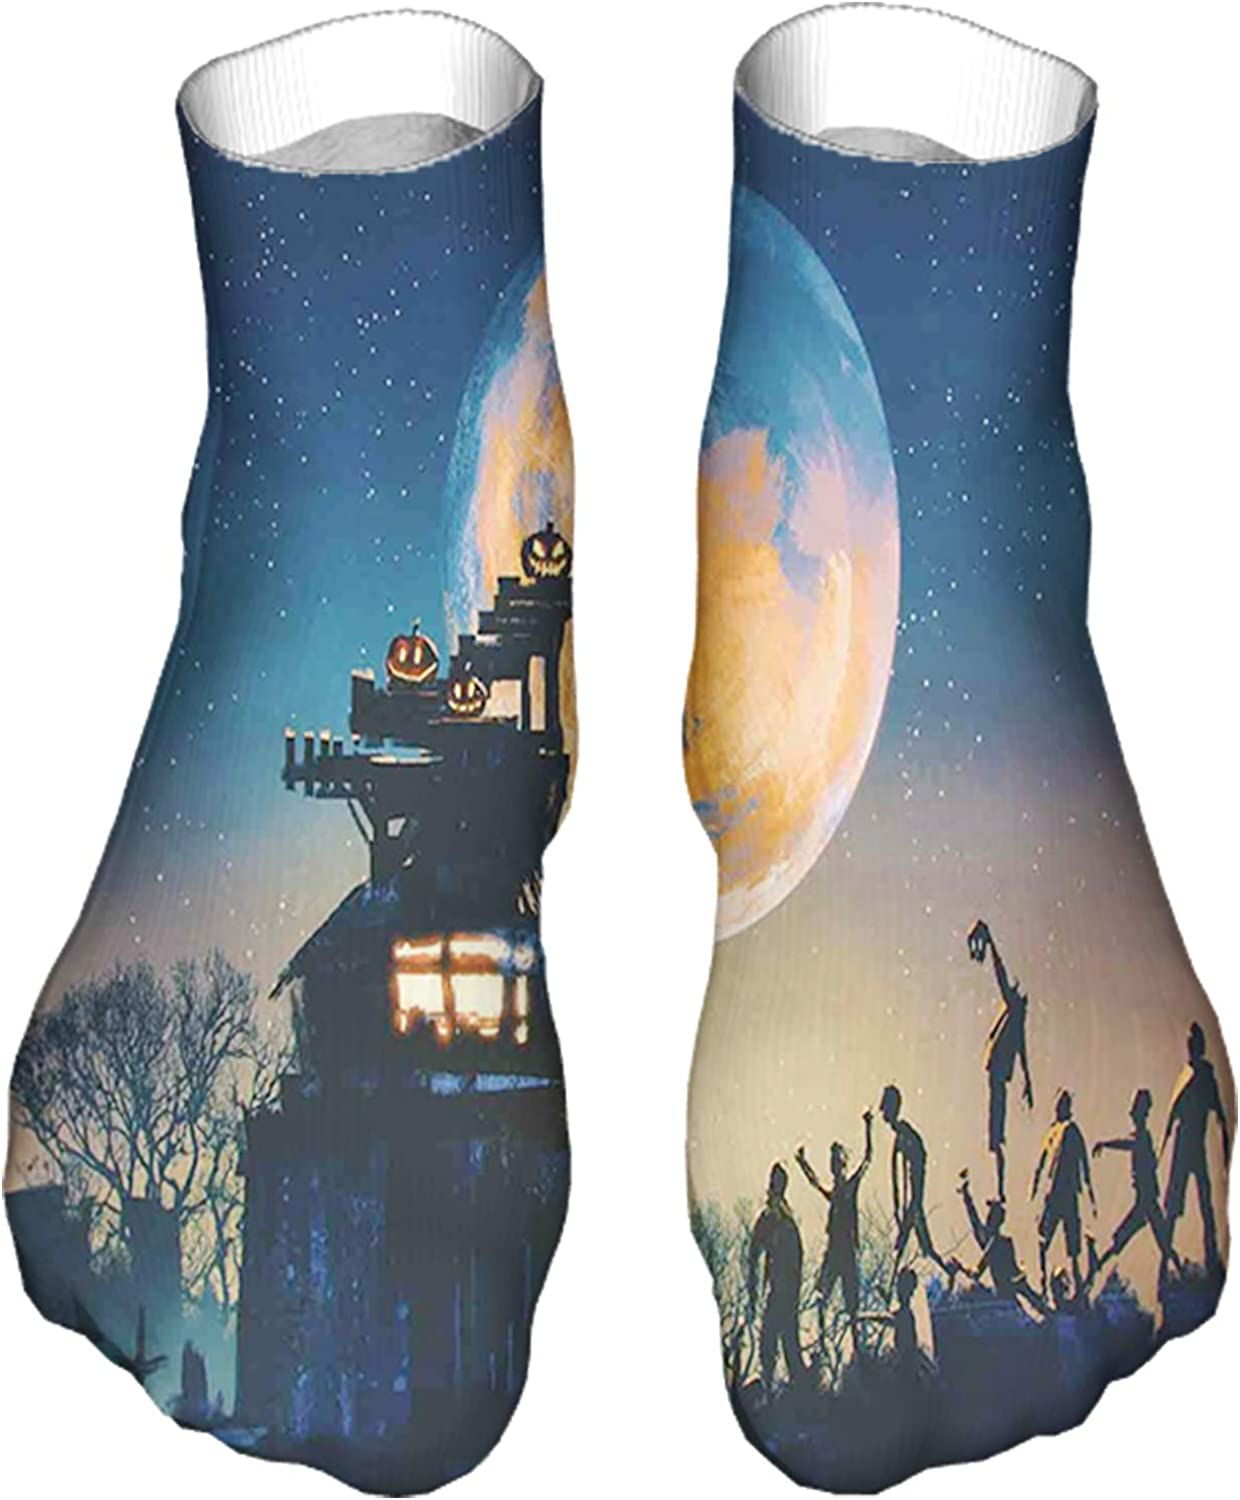 Unisex Funny Colorful Dress Socks Patterned Crazy Design SocksDead Queen in Castle Zombies in Cemetery Love Affair Bridal